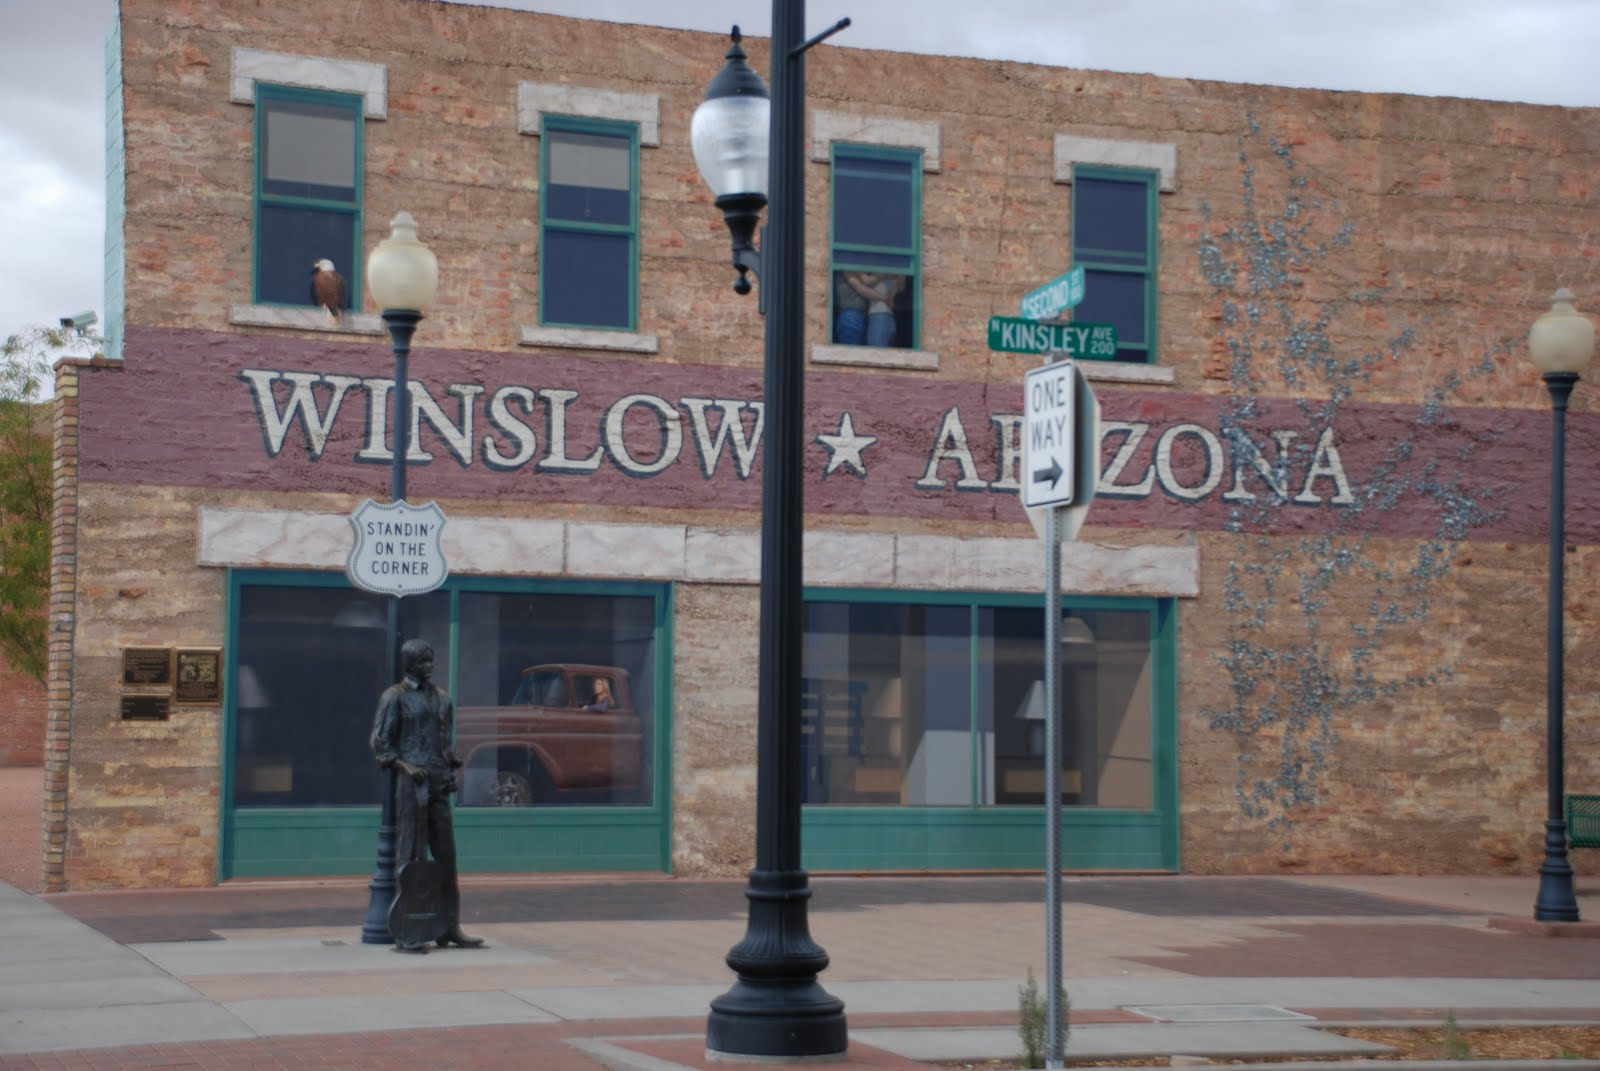 kitchens are monkey business october 22 standing on the corner in winslow arizona. Black Bedroom Furniture Sets. Home Design Ideas